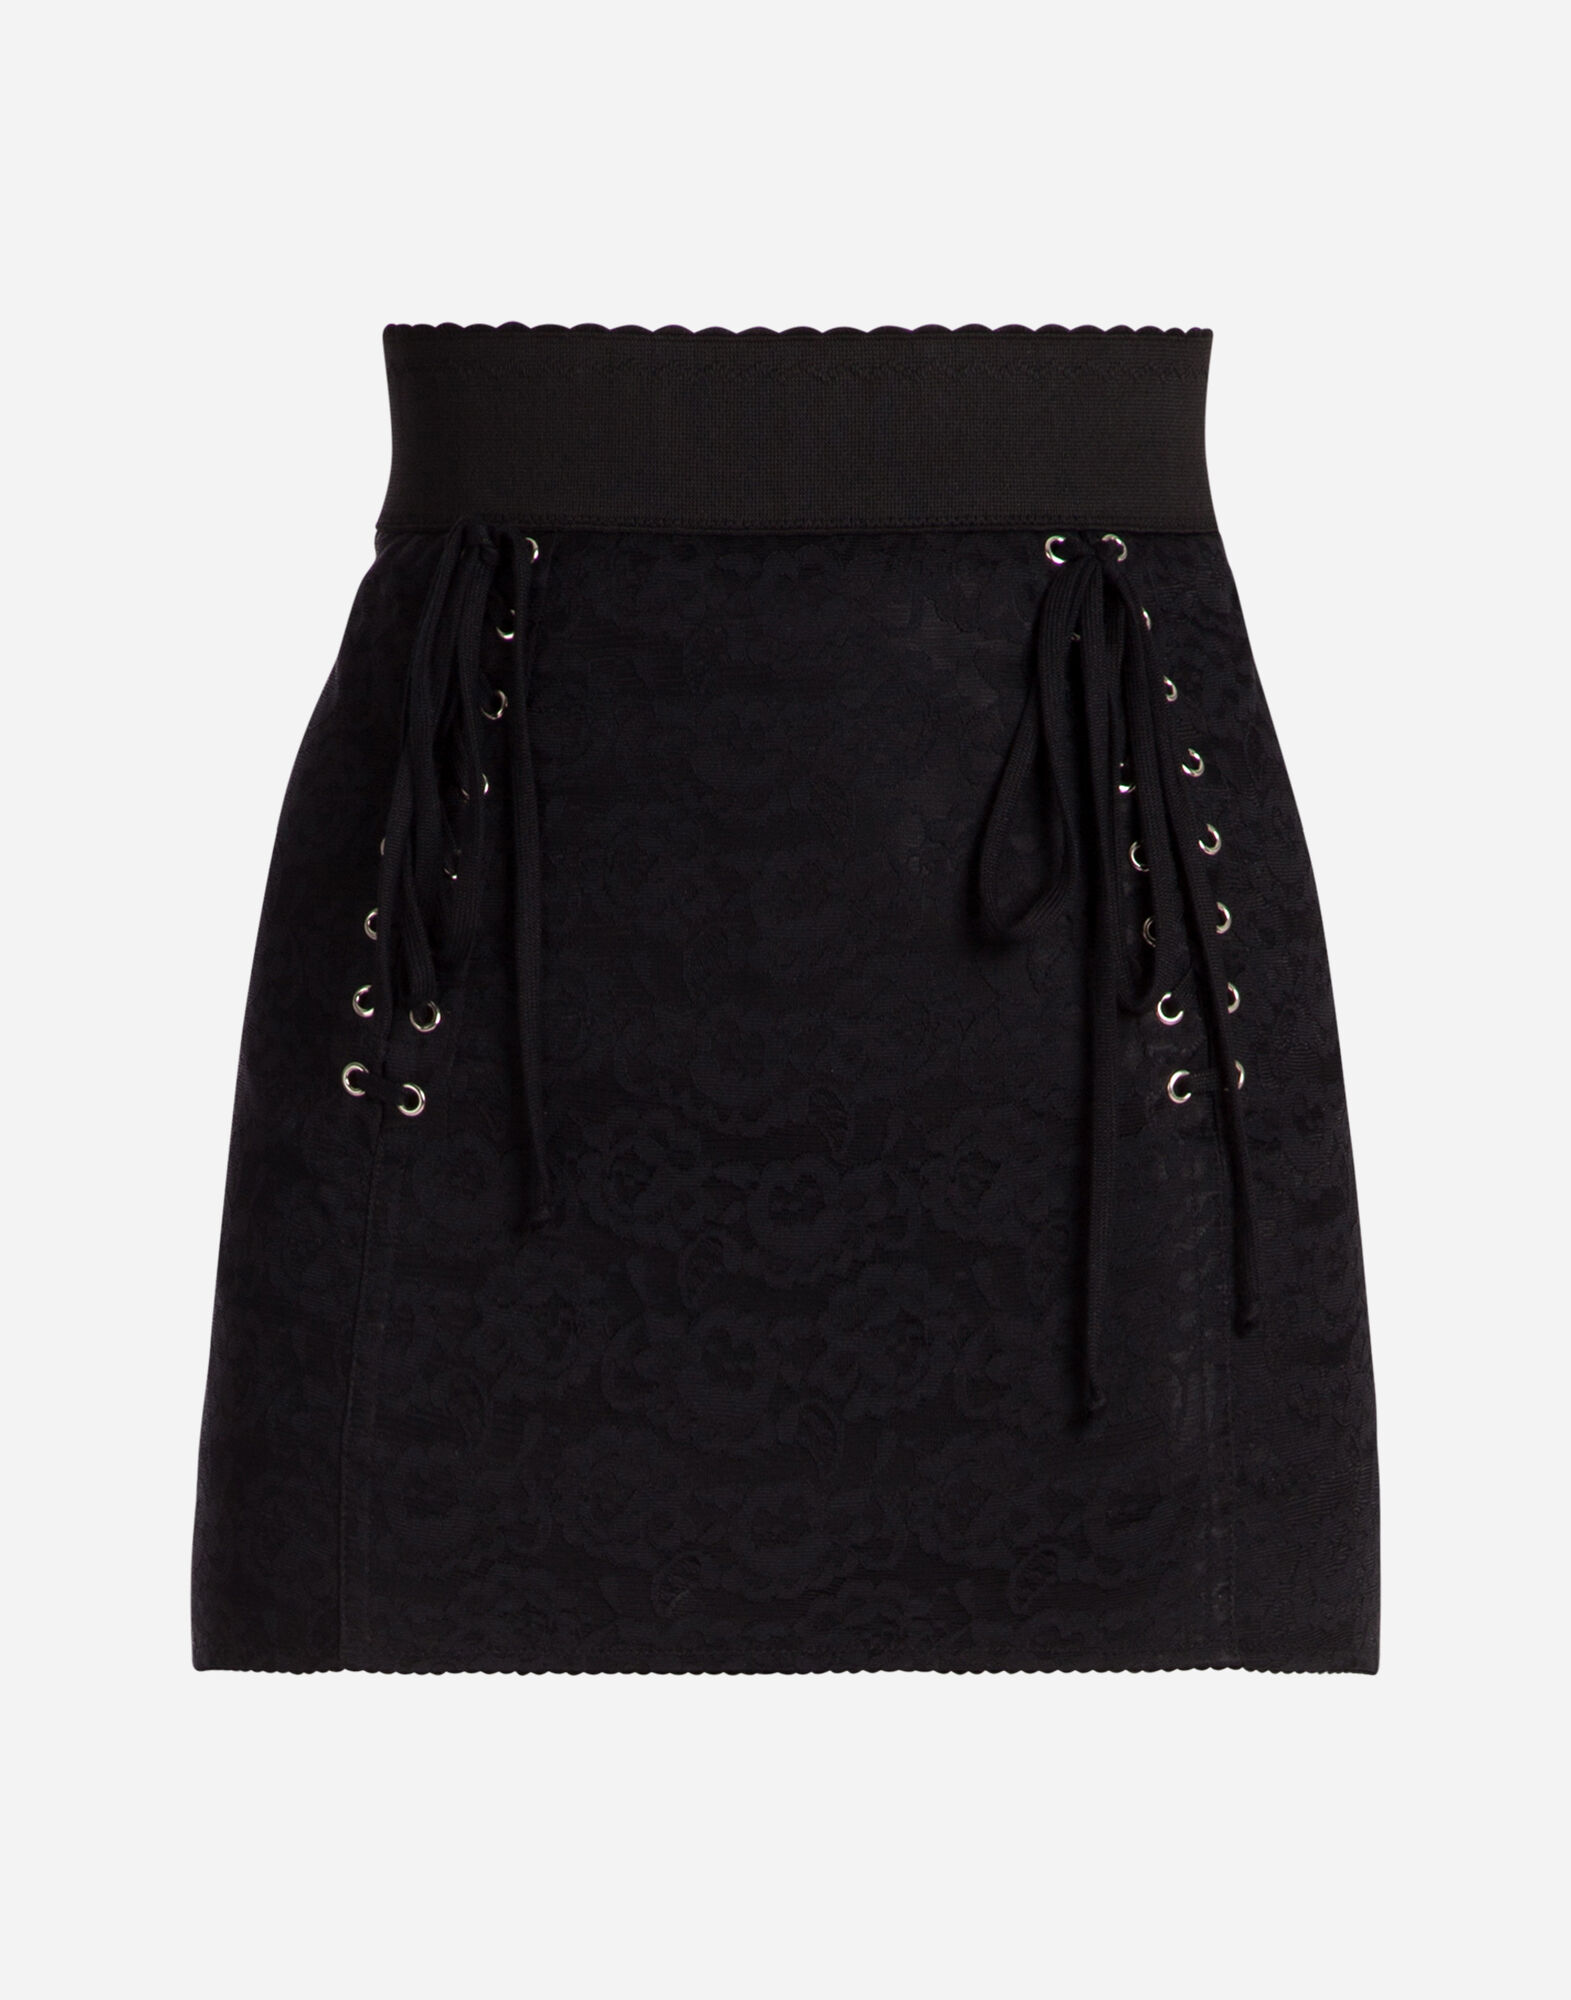 SHORT SKIRT WITH CORSET DETAILS